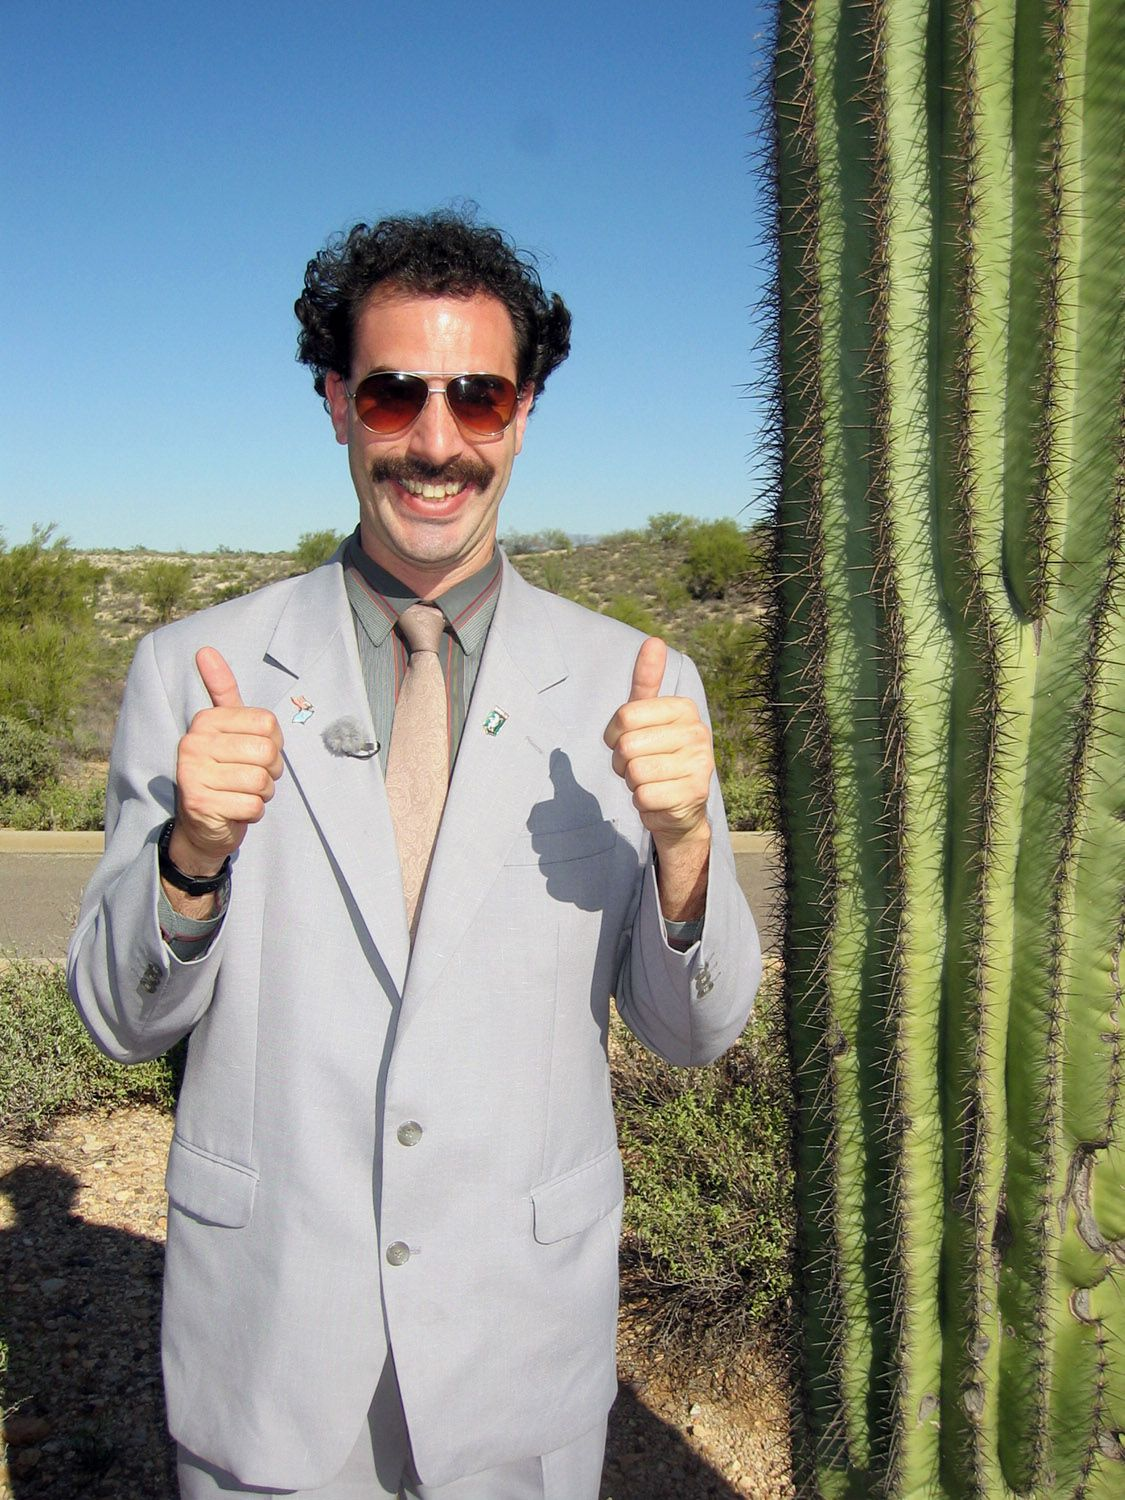 Top 10 Funniest Movies Ever As Measured In Laughs Per Minute Top 10 Funny Movies Funny Movies Borat Very Nice